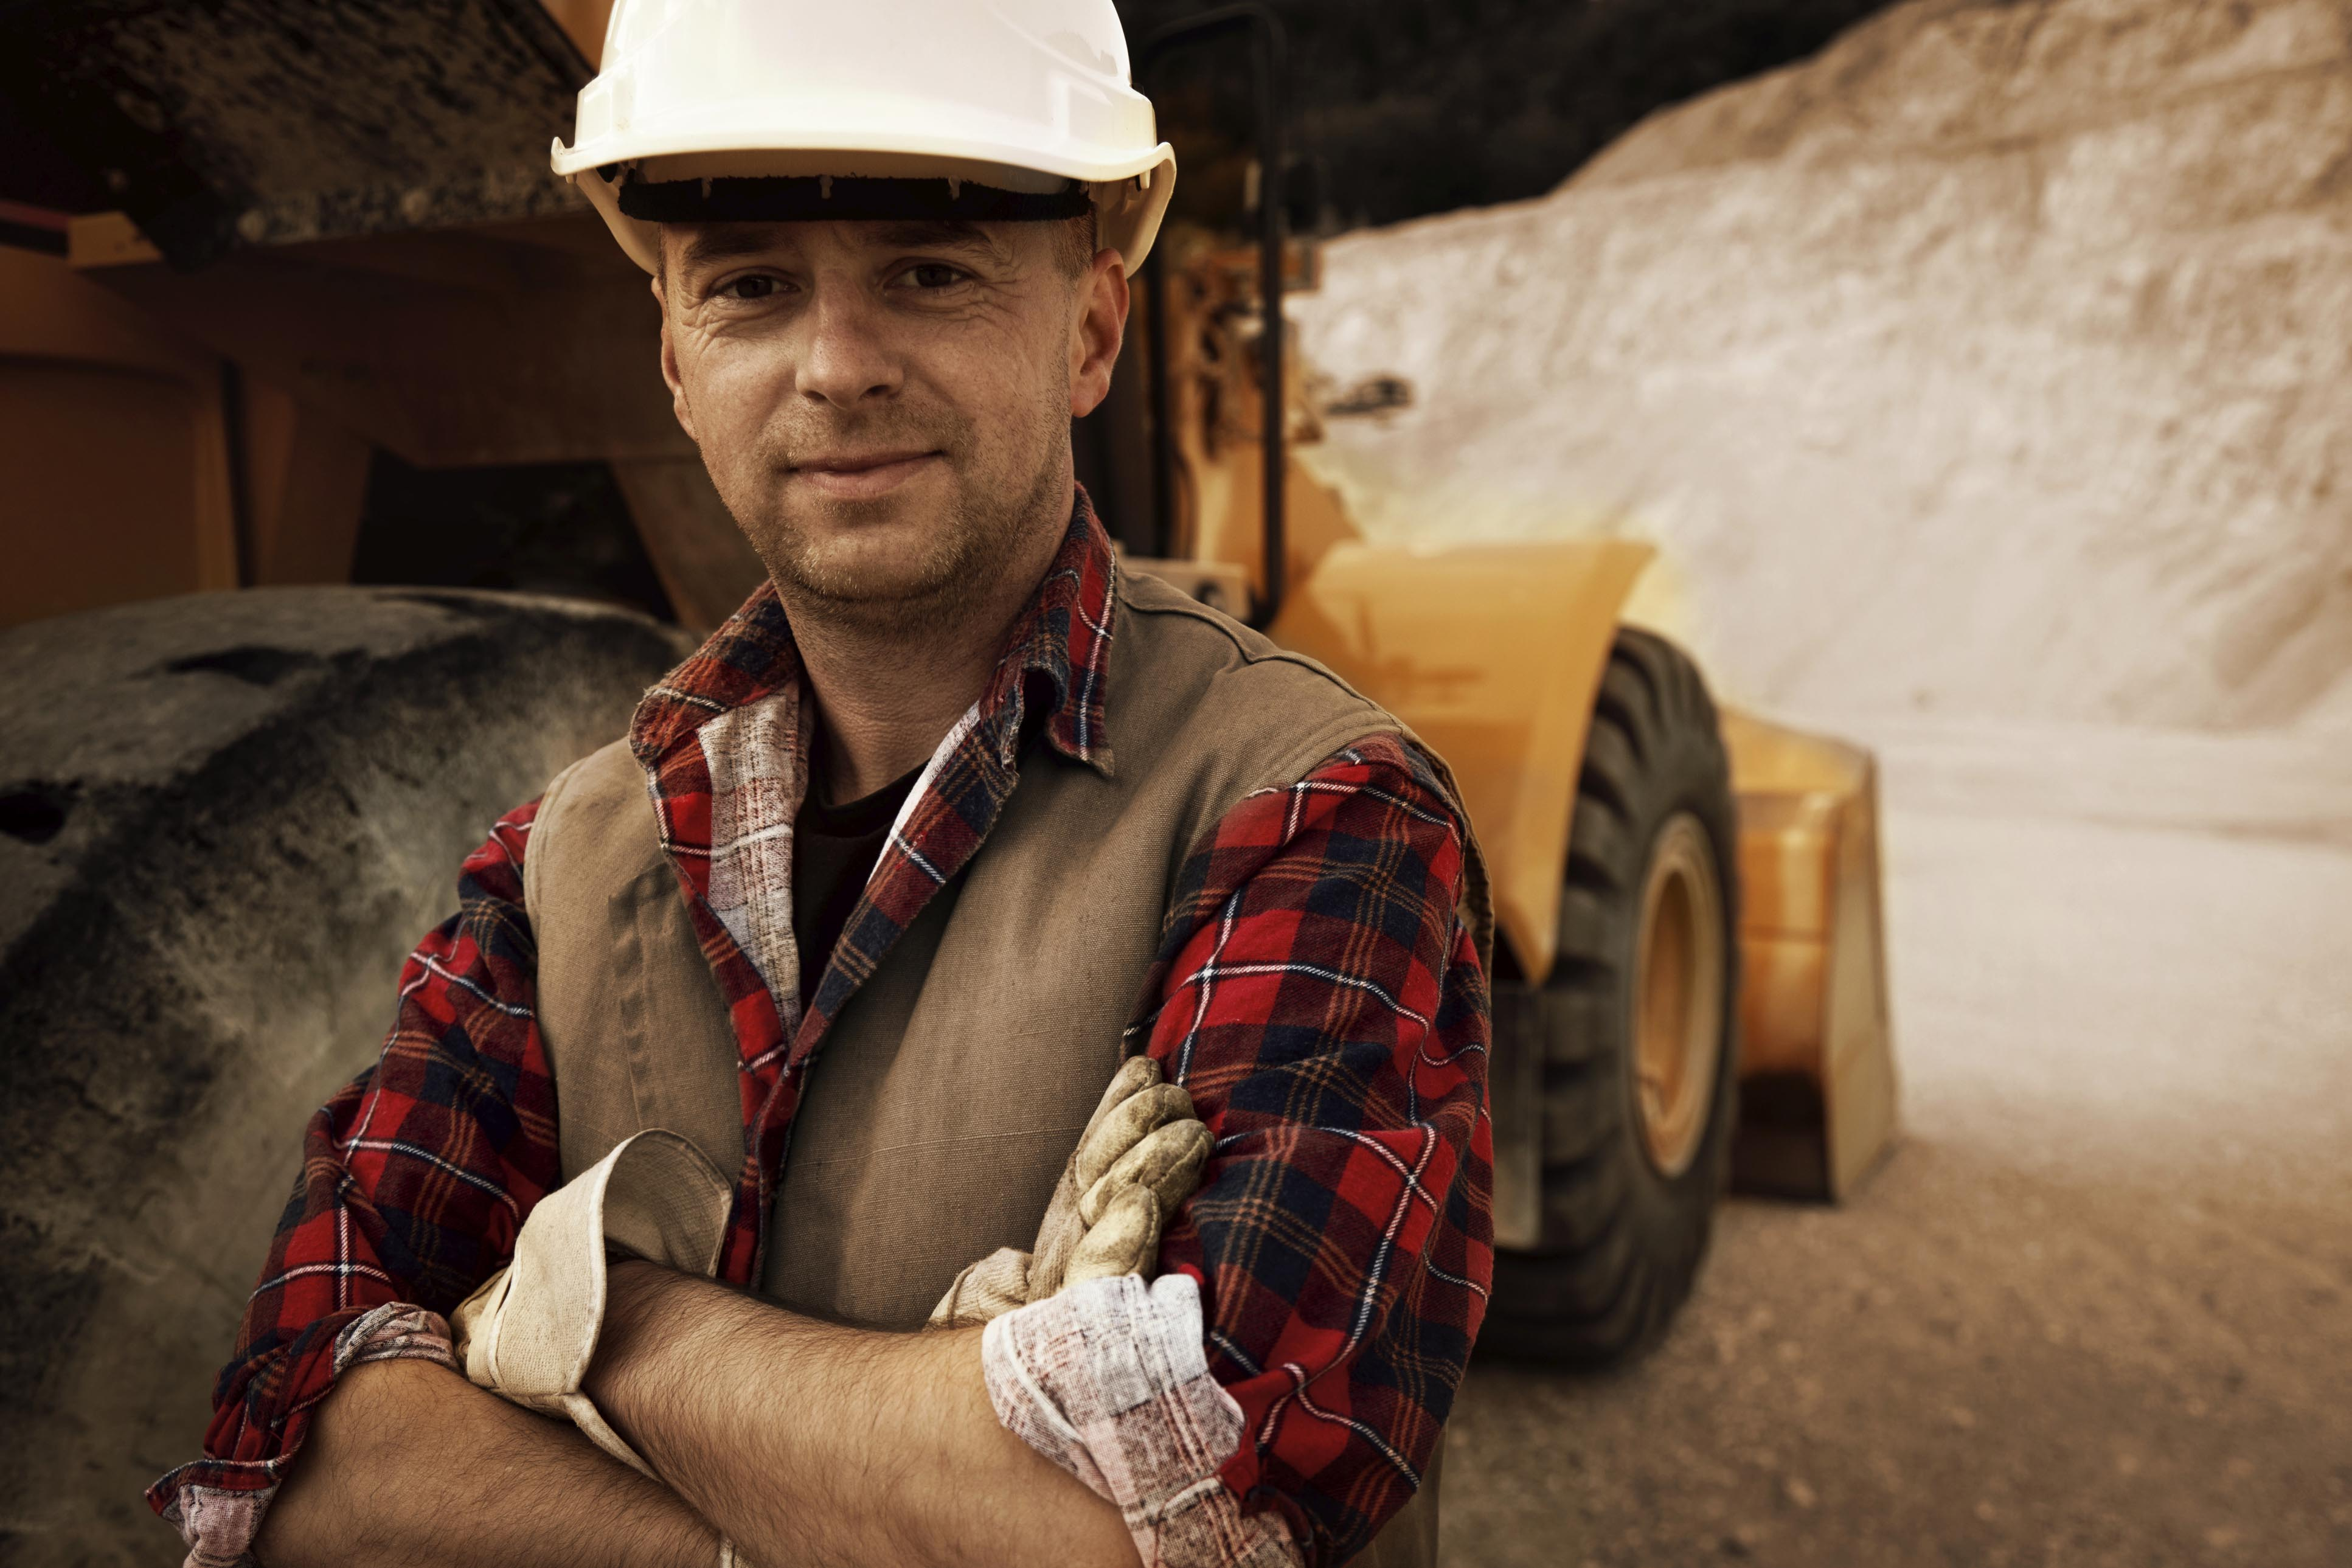 A man in a potash mine considering training for the mining industry.